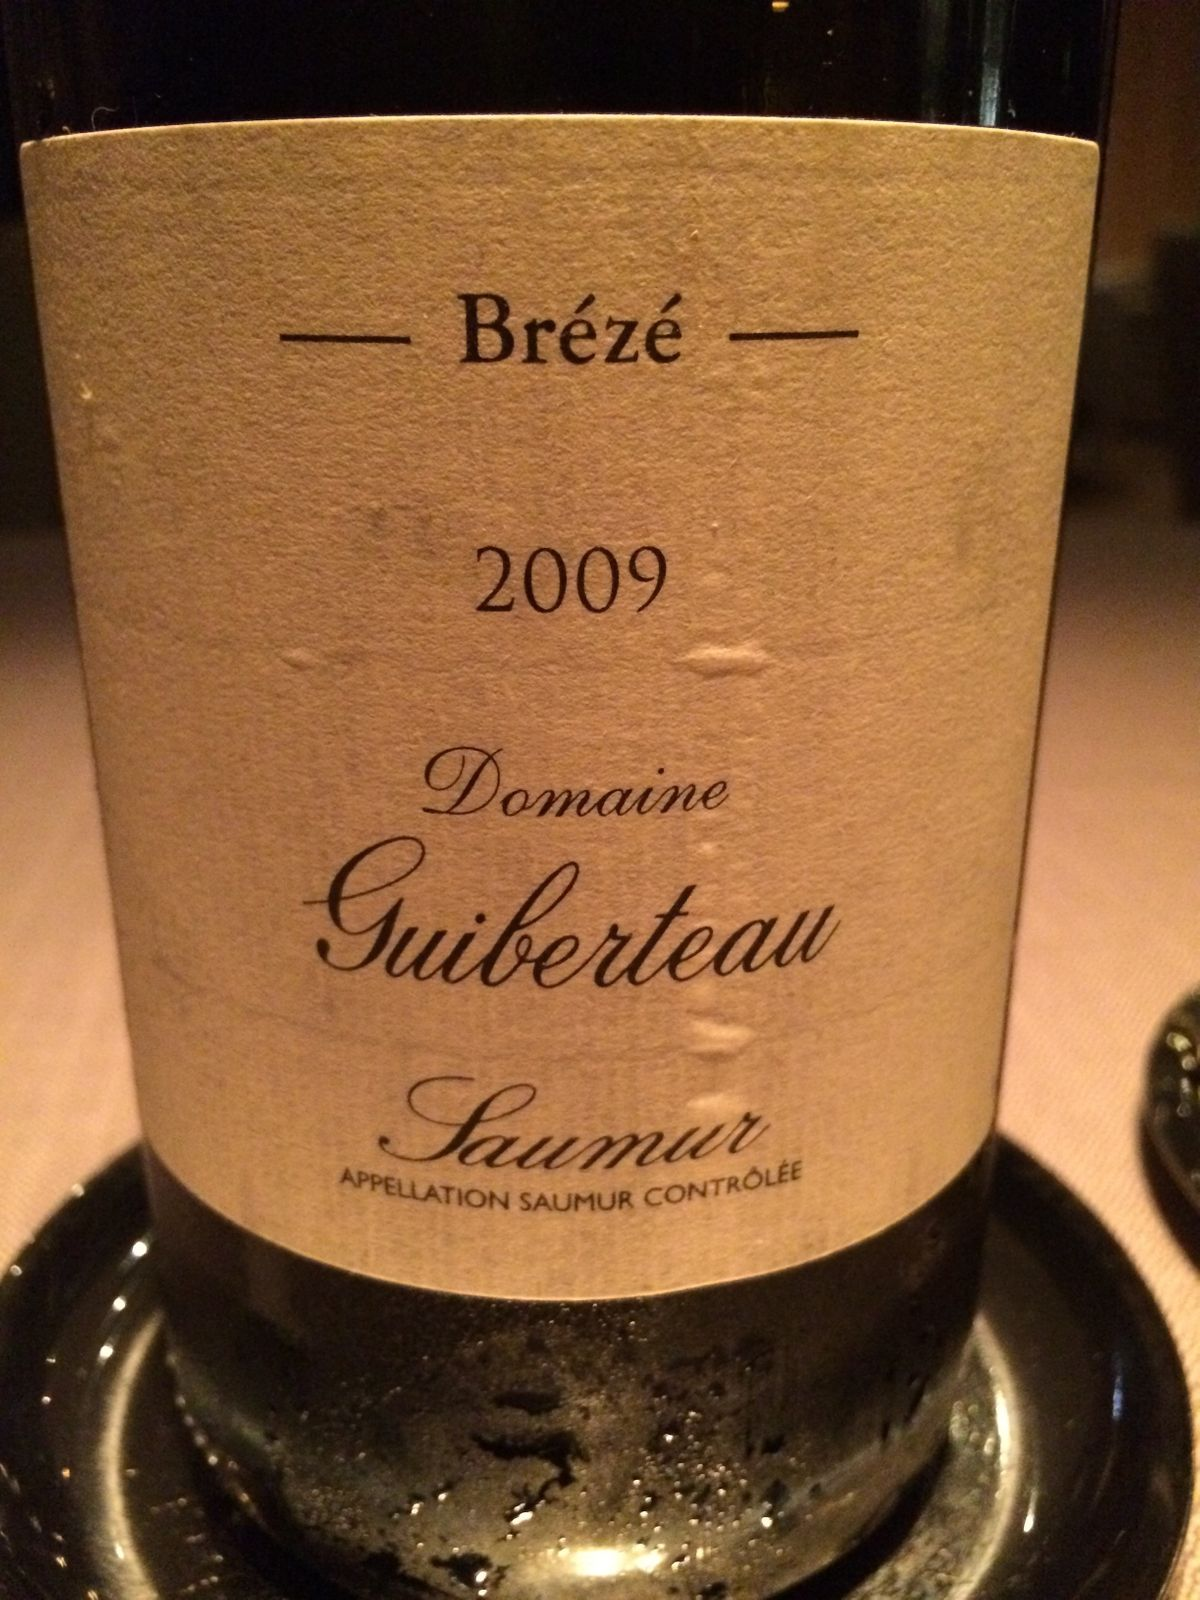 Keeper Collection 2009 Domaine Guiberteau Breze